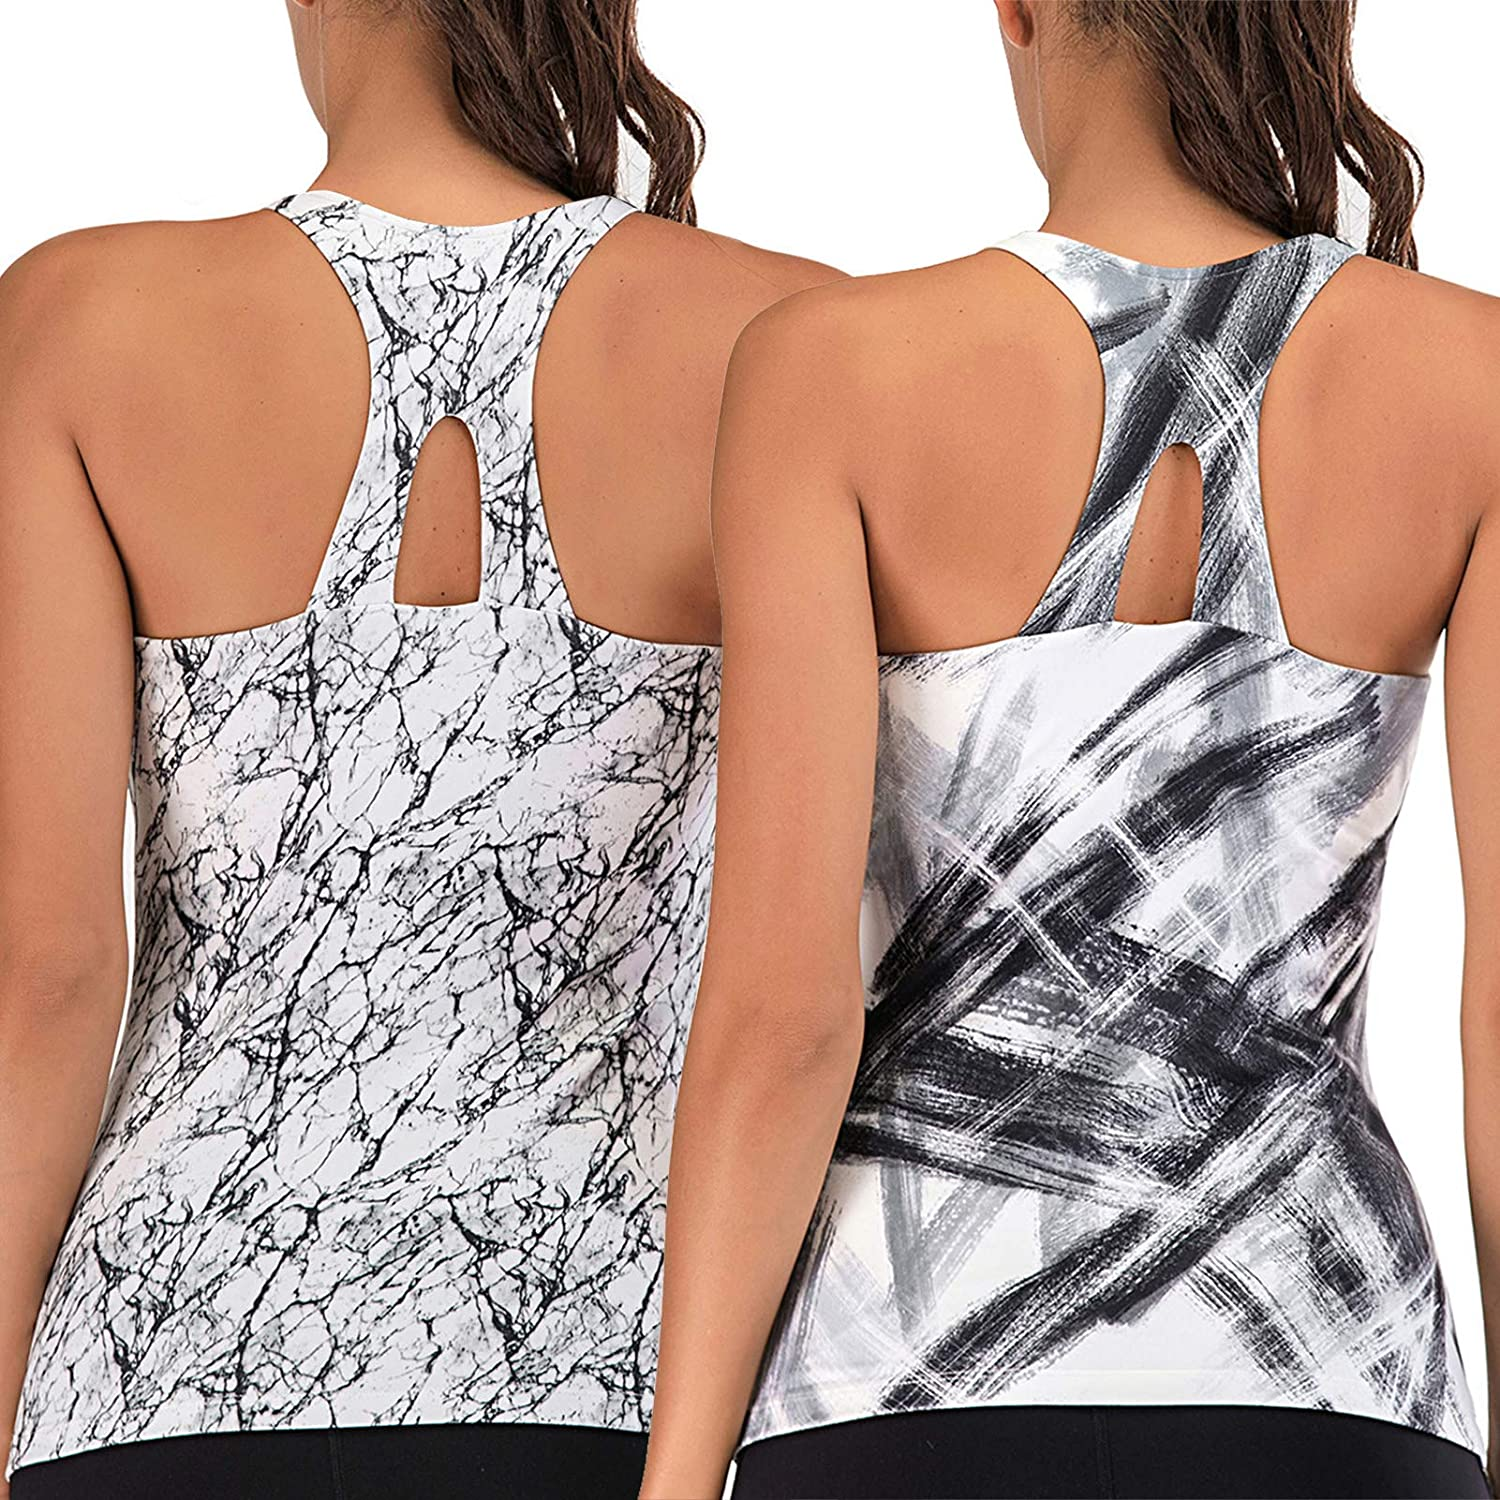 Womens Workout Tops with Built in Bra Yoga Racerback Exercise Running Gym Shirts Fitness Active Tank Tops 2 Pack